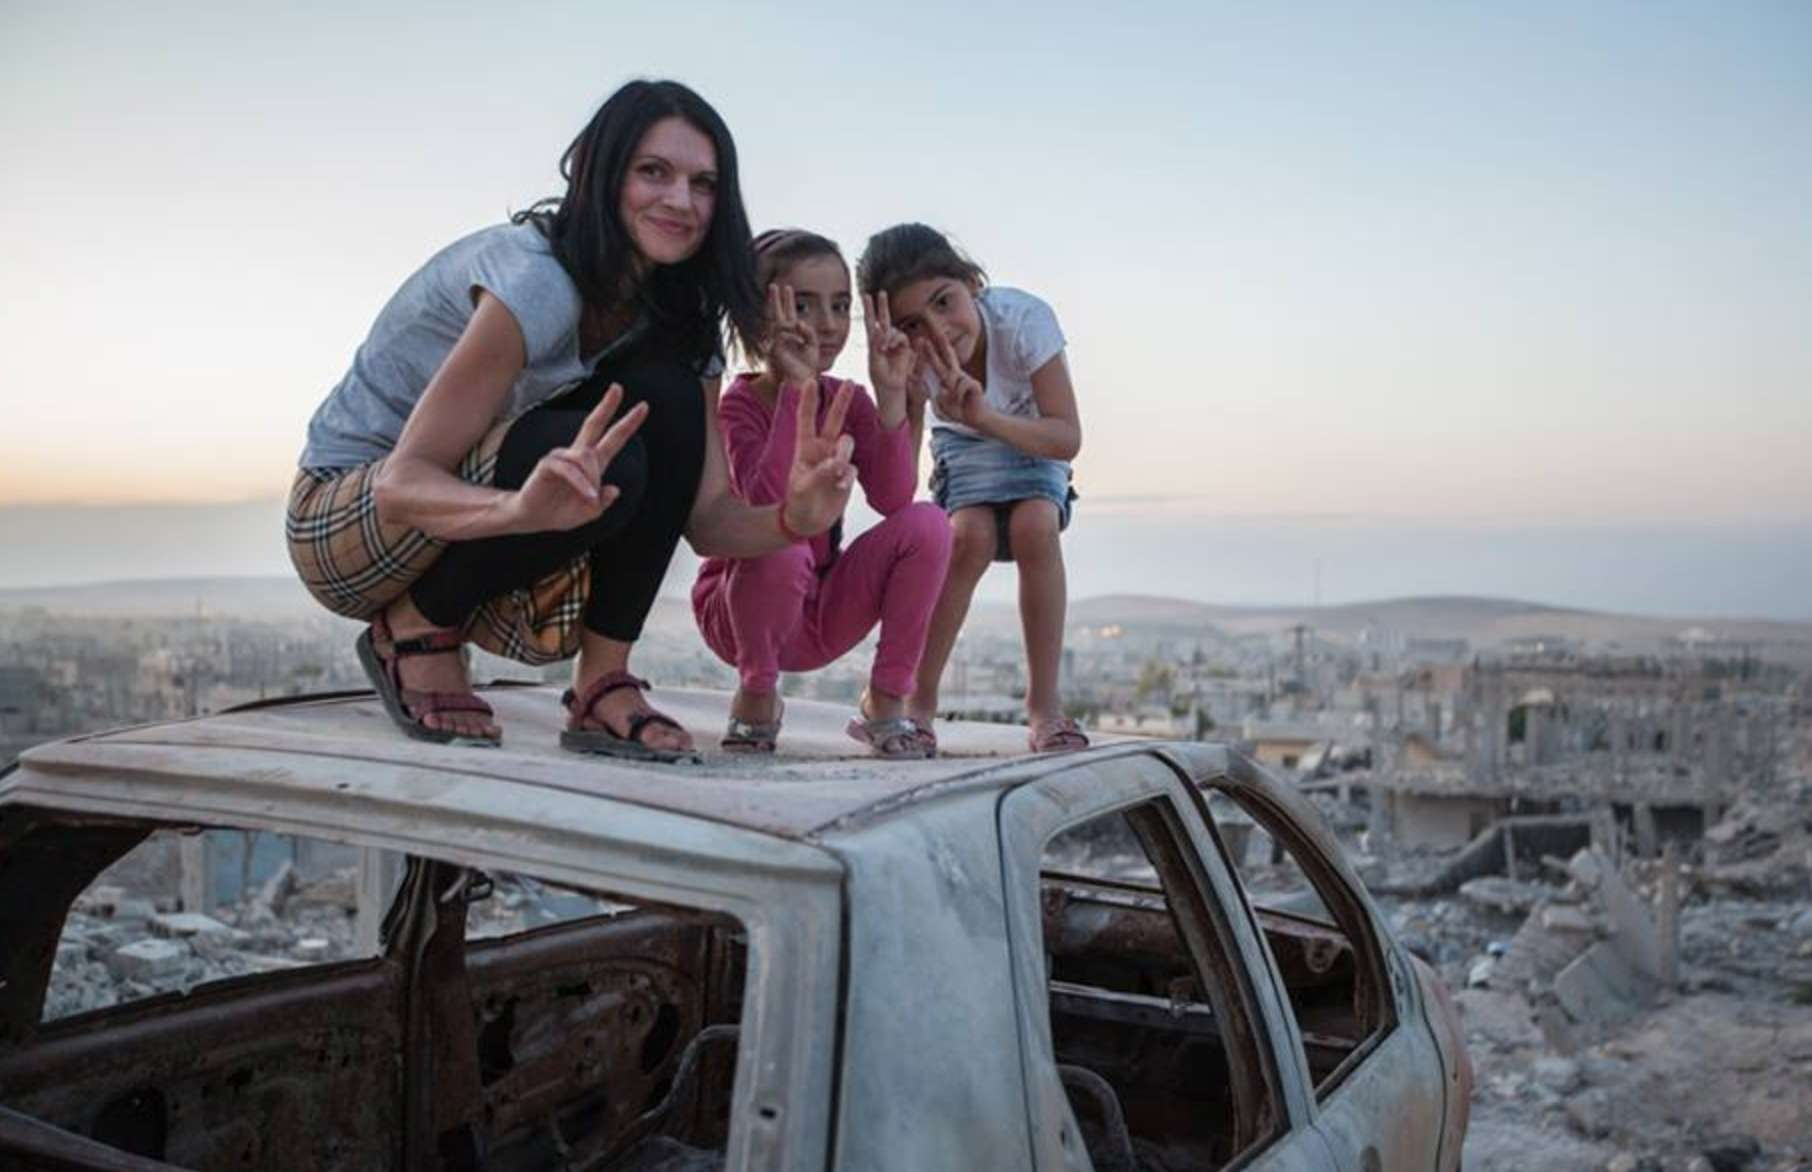 Marketa with kids in Syria